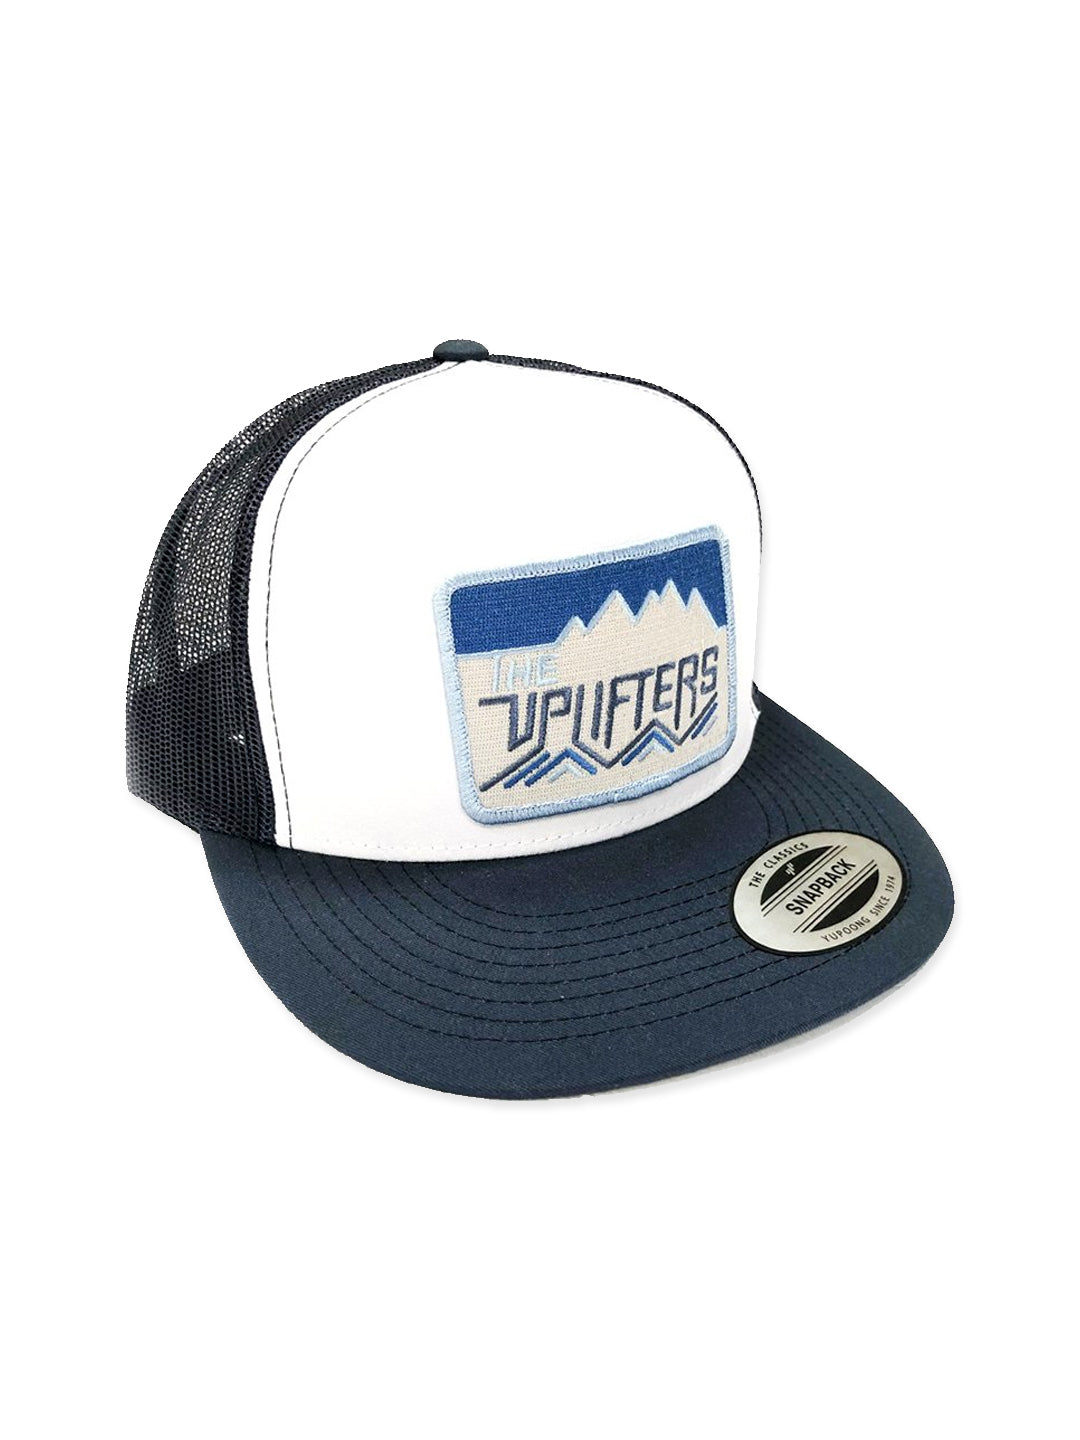 The Uplifters Signature Trucker